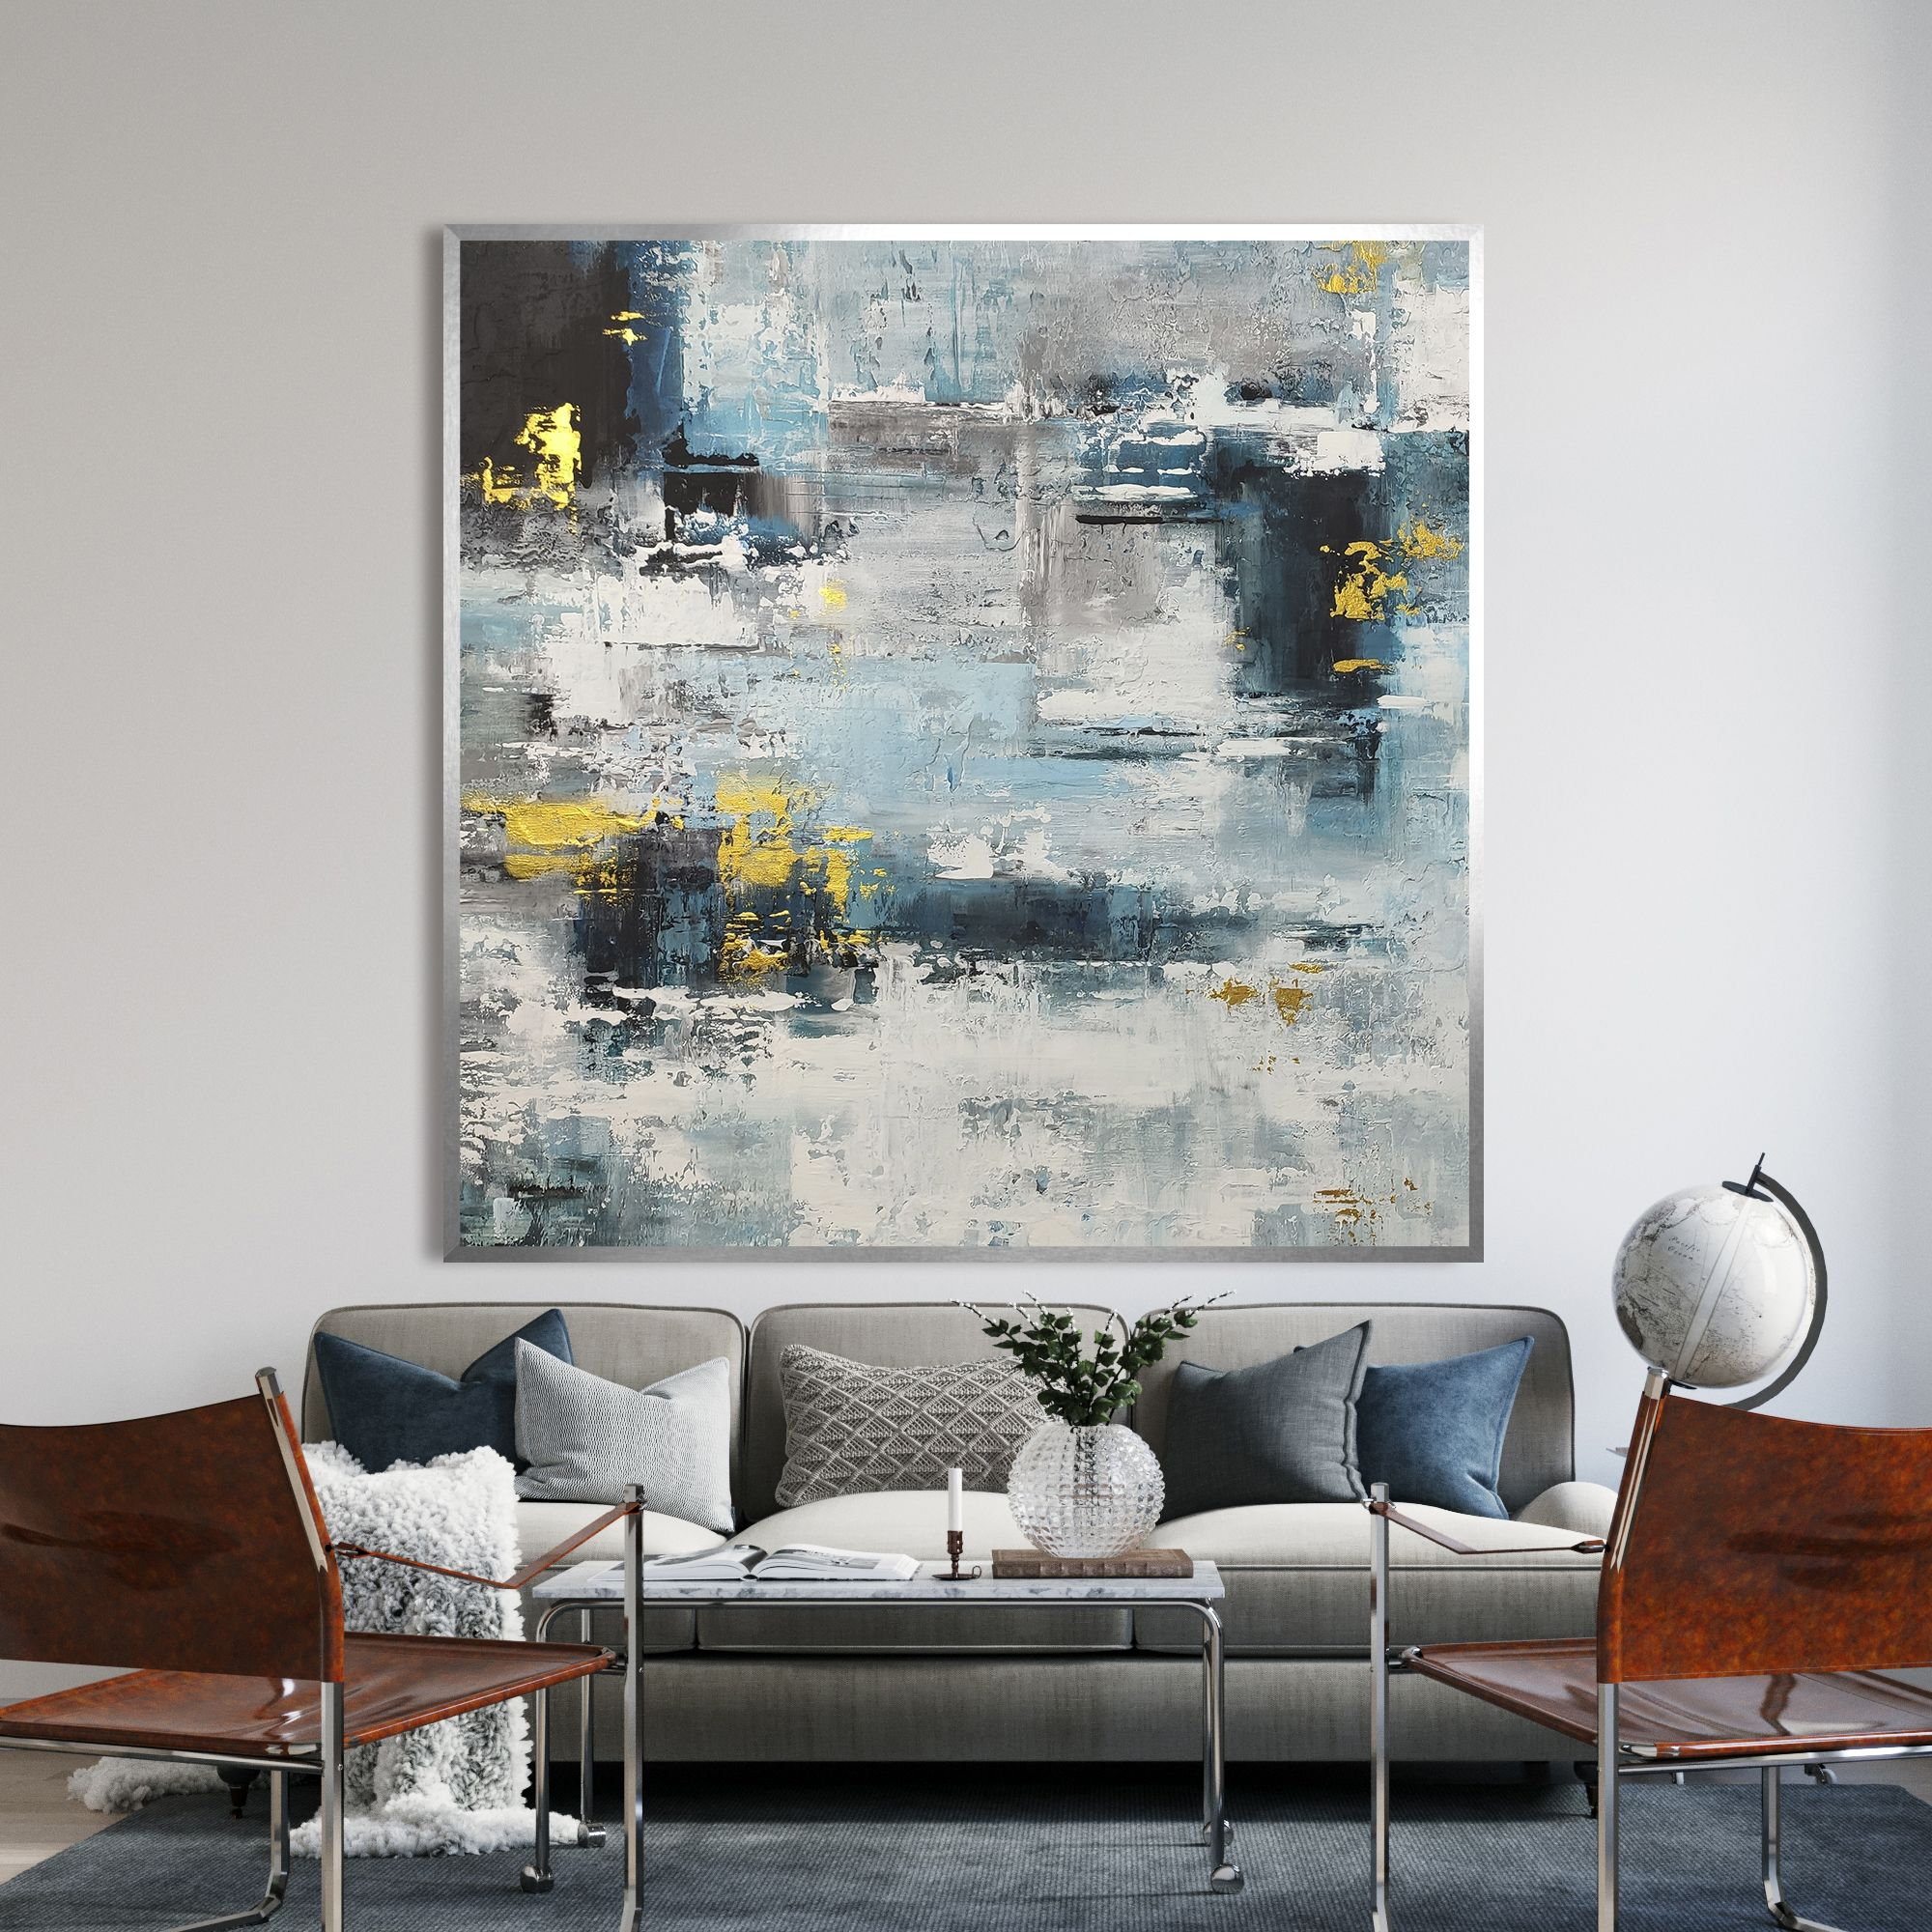 ✔ Texture and brush strokes you will love. ✔ Free shipping ✔ Original handmade acrylic painting on canvas ✔ This painting can be made in so many different sizes . Abstract, Contemporary Art, Modern Artwork Home Decor, Modern Wall Art #art #paintings #gallery #painting #acrylic #handmade #acryliconcanvas #canvases #instapainting #acrylicpainting #abstractartist #abstractartwork #minimalart #artoncanvas #modernabstract #canvasart #contemporarypainting #wallartdecor #acrylicart